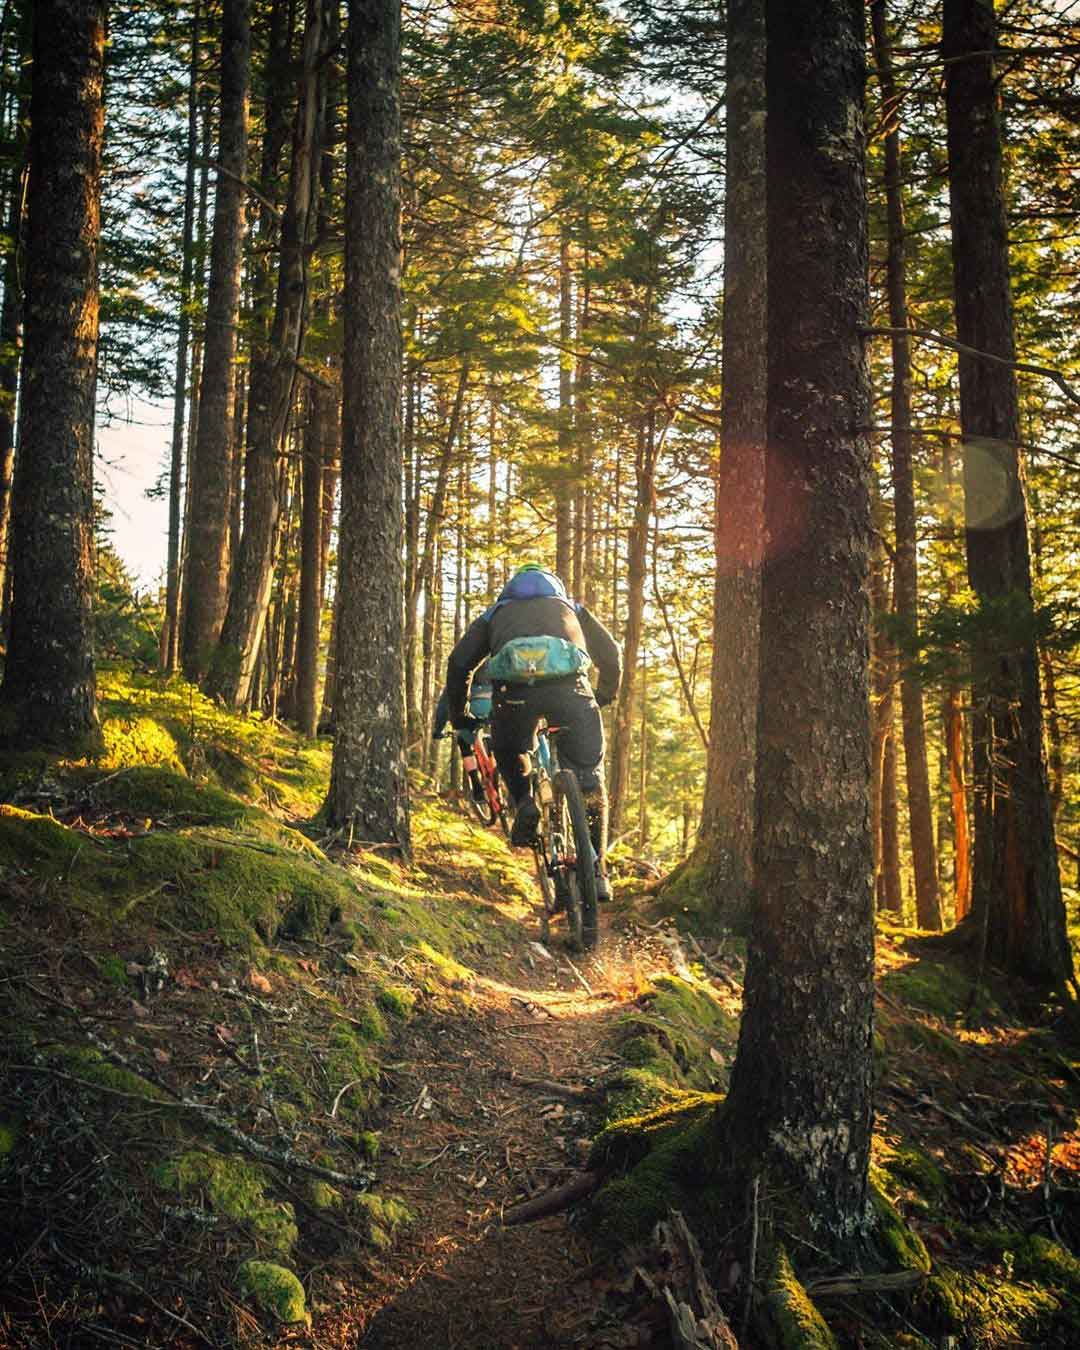 A person is riding a MTB in forest around Algarve